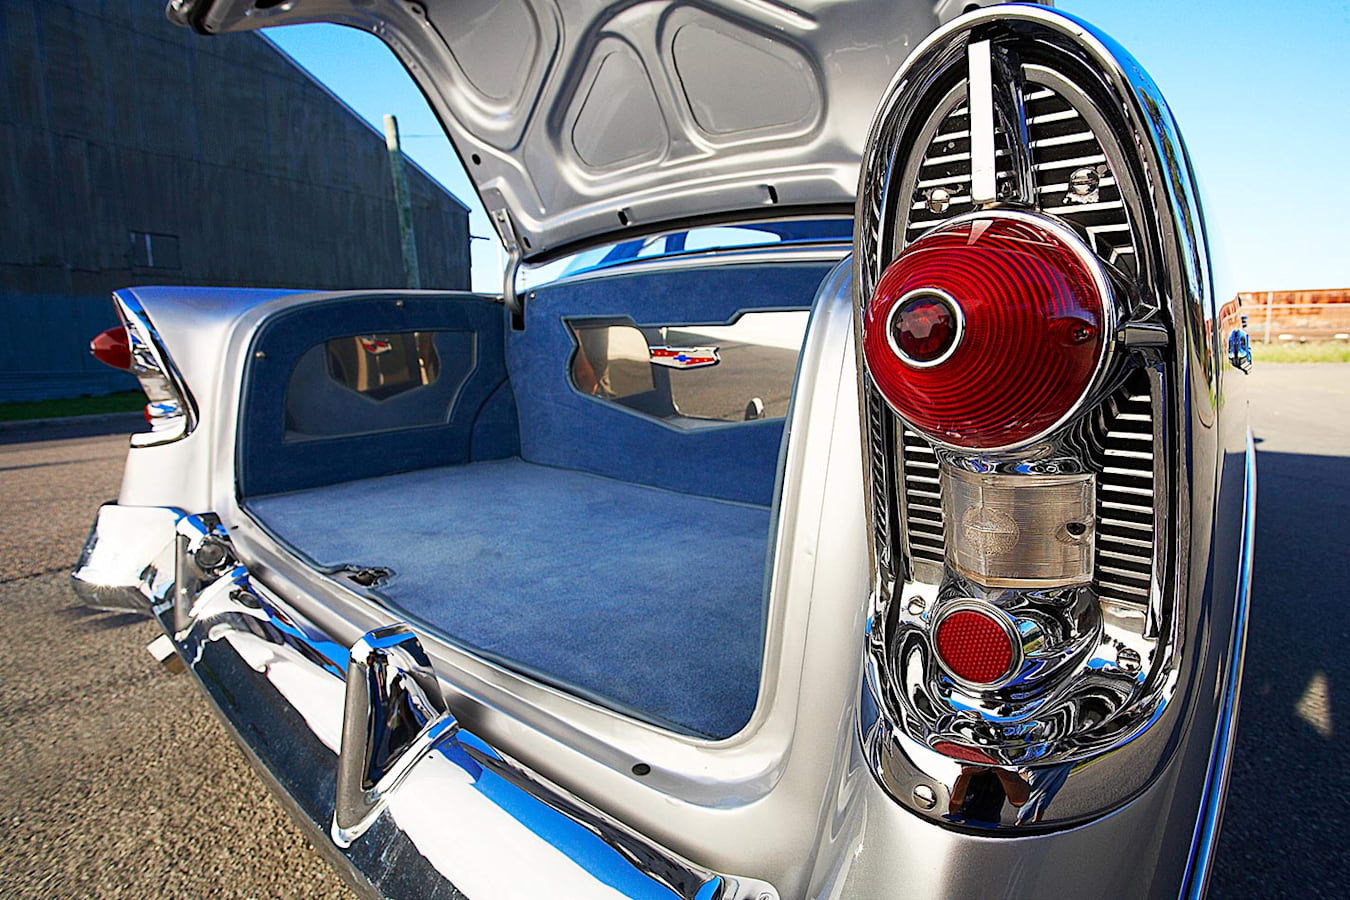 Chev 210 tail fins